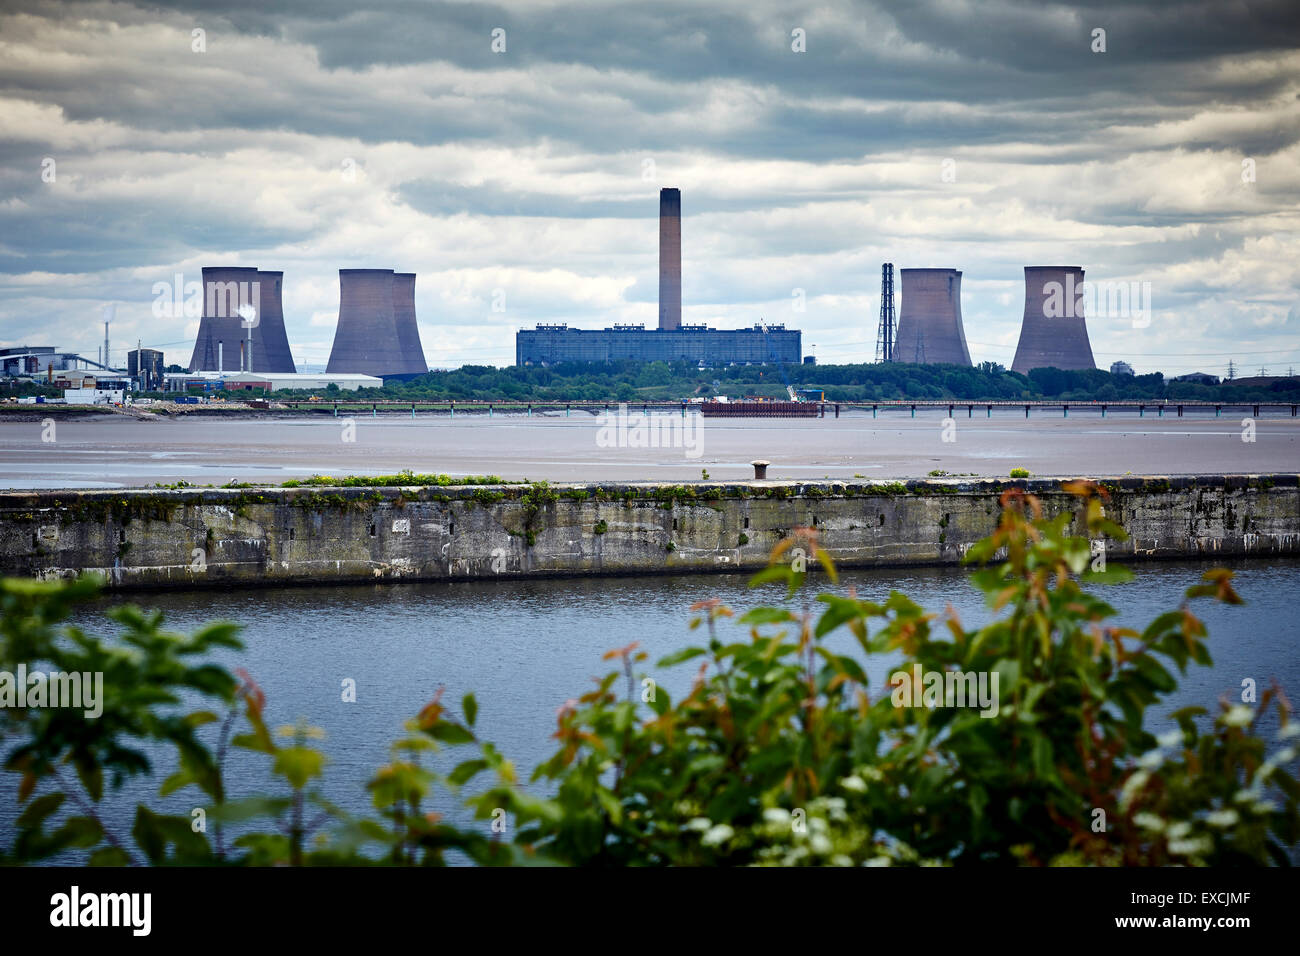 Runcorn is an industrial town and cargo port in Halton, Cheshire, UK.  Pictured  Fiddlers Ferry Power Station is - Stock Image